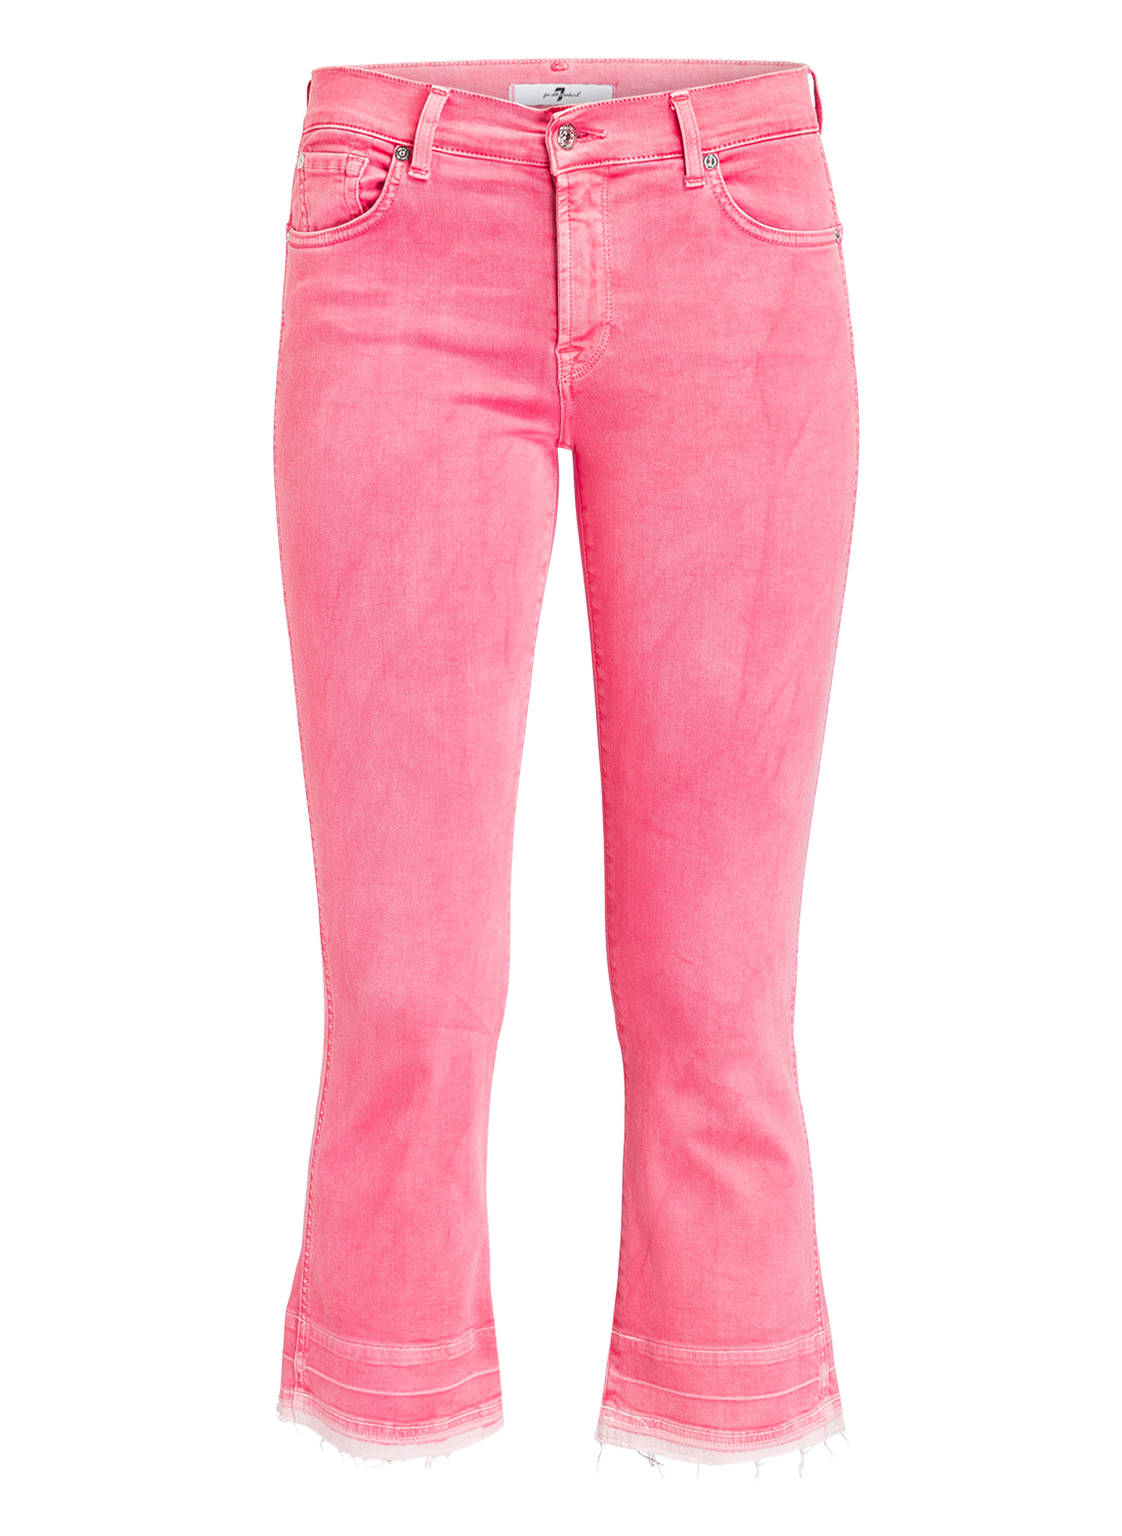 Image of 7 For All Mankind 7/8-Jeans pink